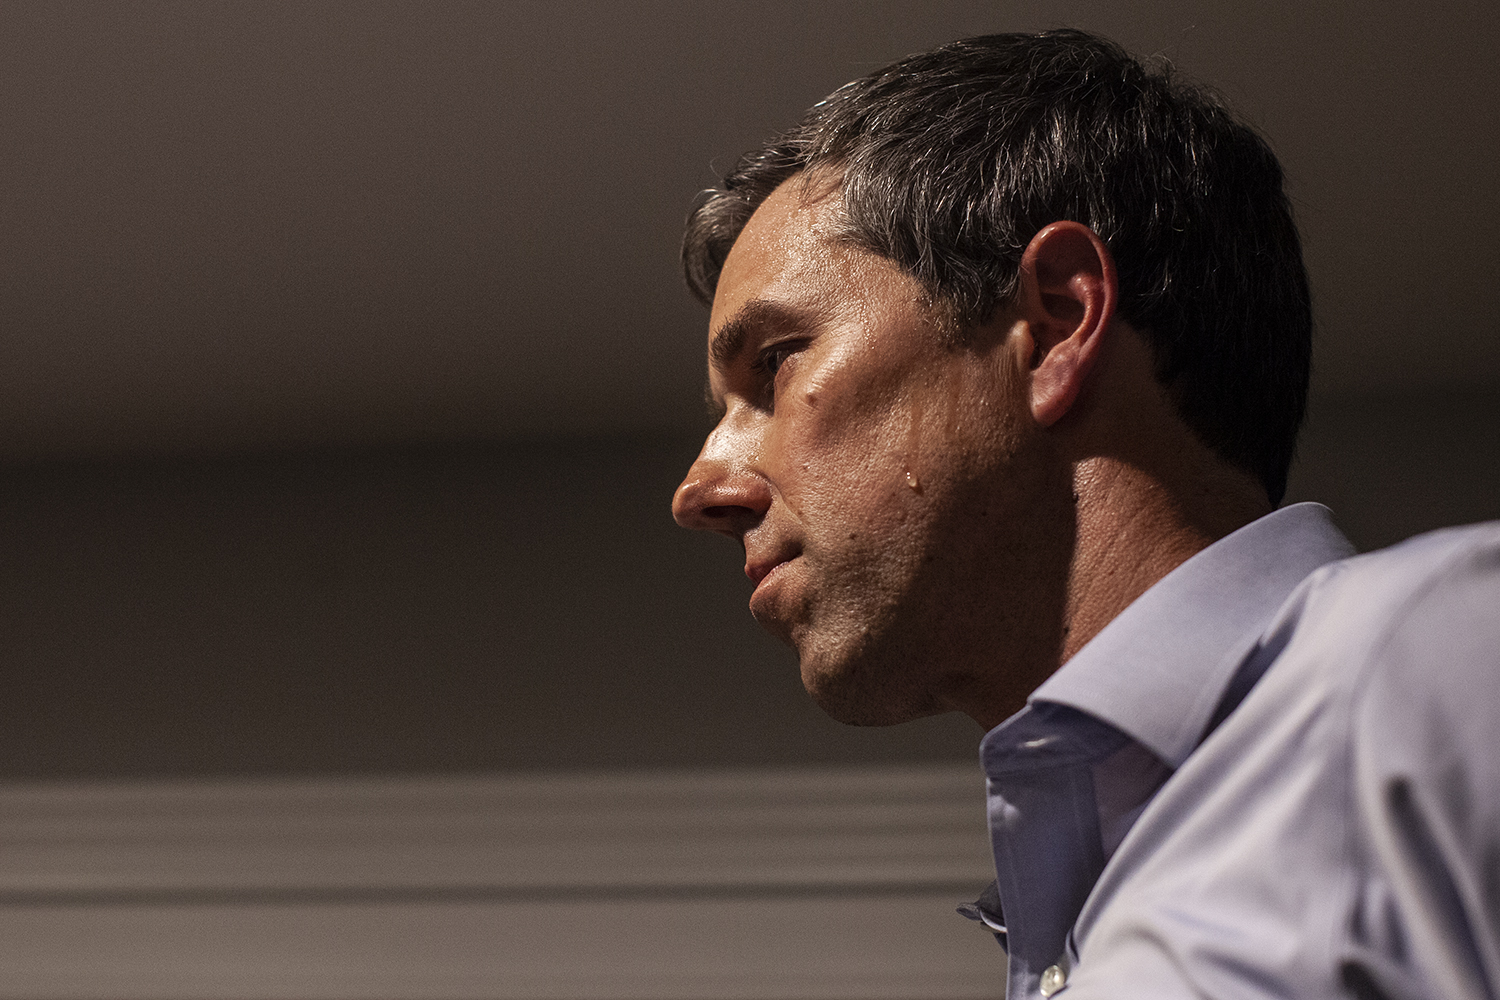 Democratic presidential candidate Beto O'Rourke speaks at the home of John Murphy in Dubuque, Iowa on Sunday, March 16, 2019.